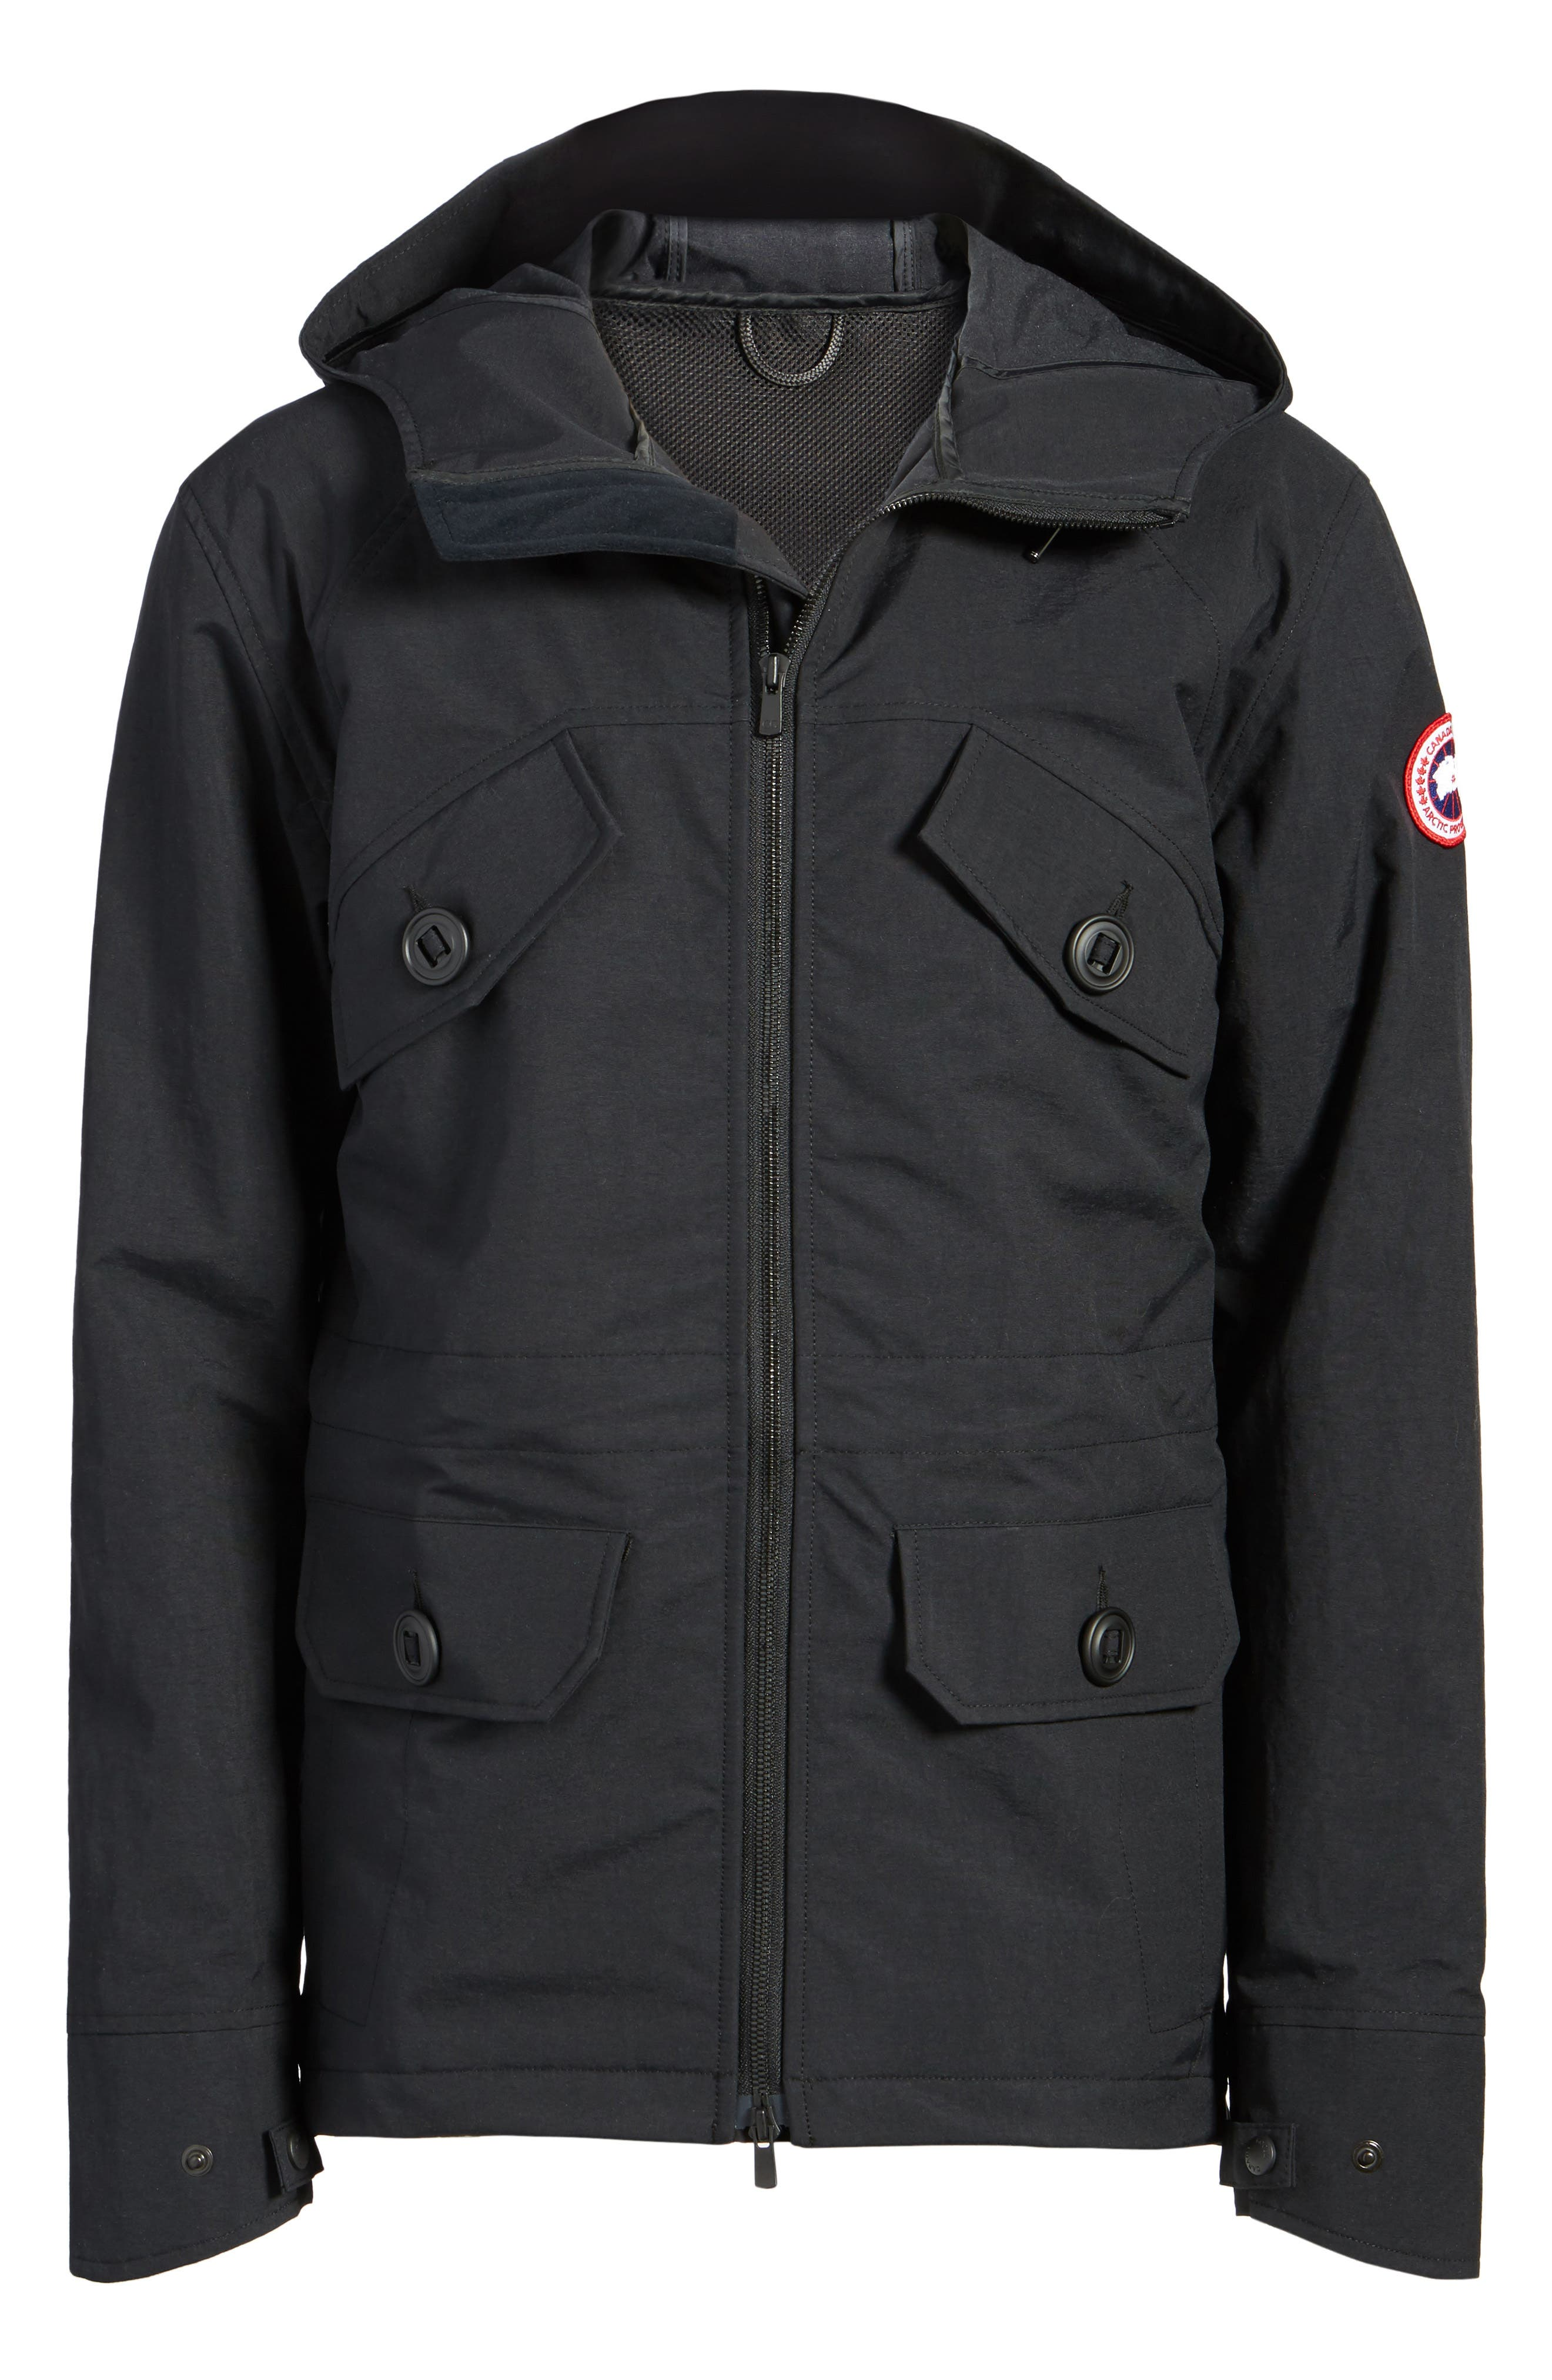 CANADA GOOSE,                             Redstone Slim Fit Hooded Jacket,                             Alternate thumbnail 5, color,                             001